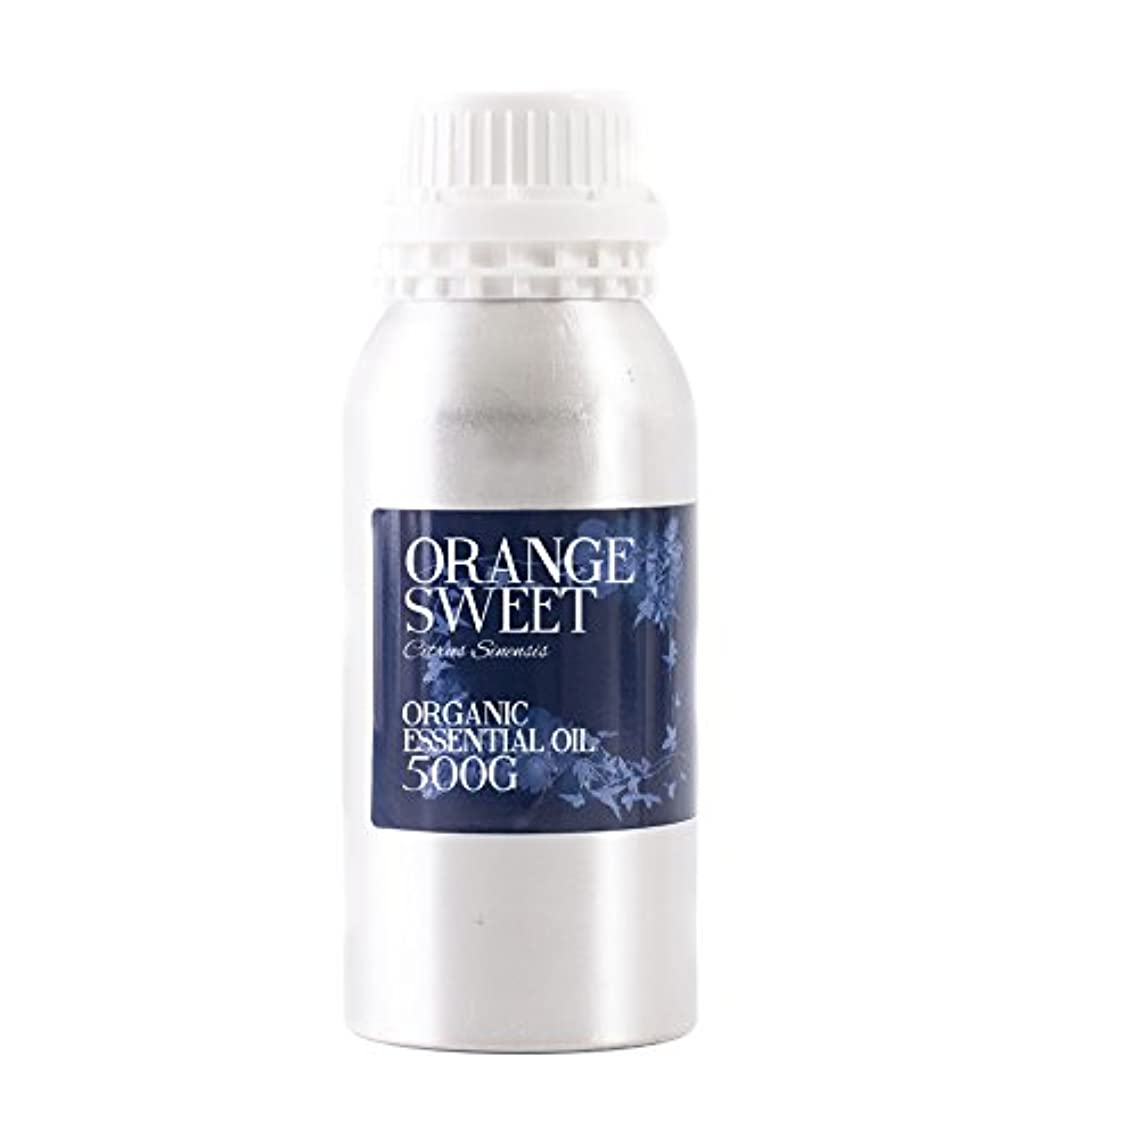 ポーター印象派複合Mystic Moments | Orange Sweet Organic Essential Oil - 500g - 100% Pure